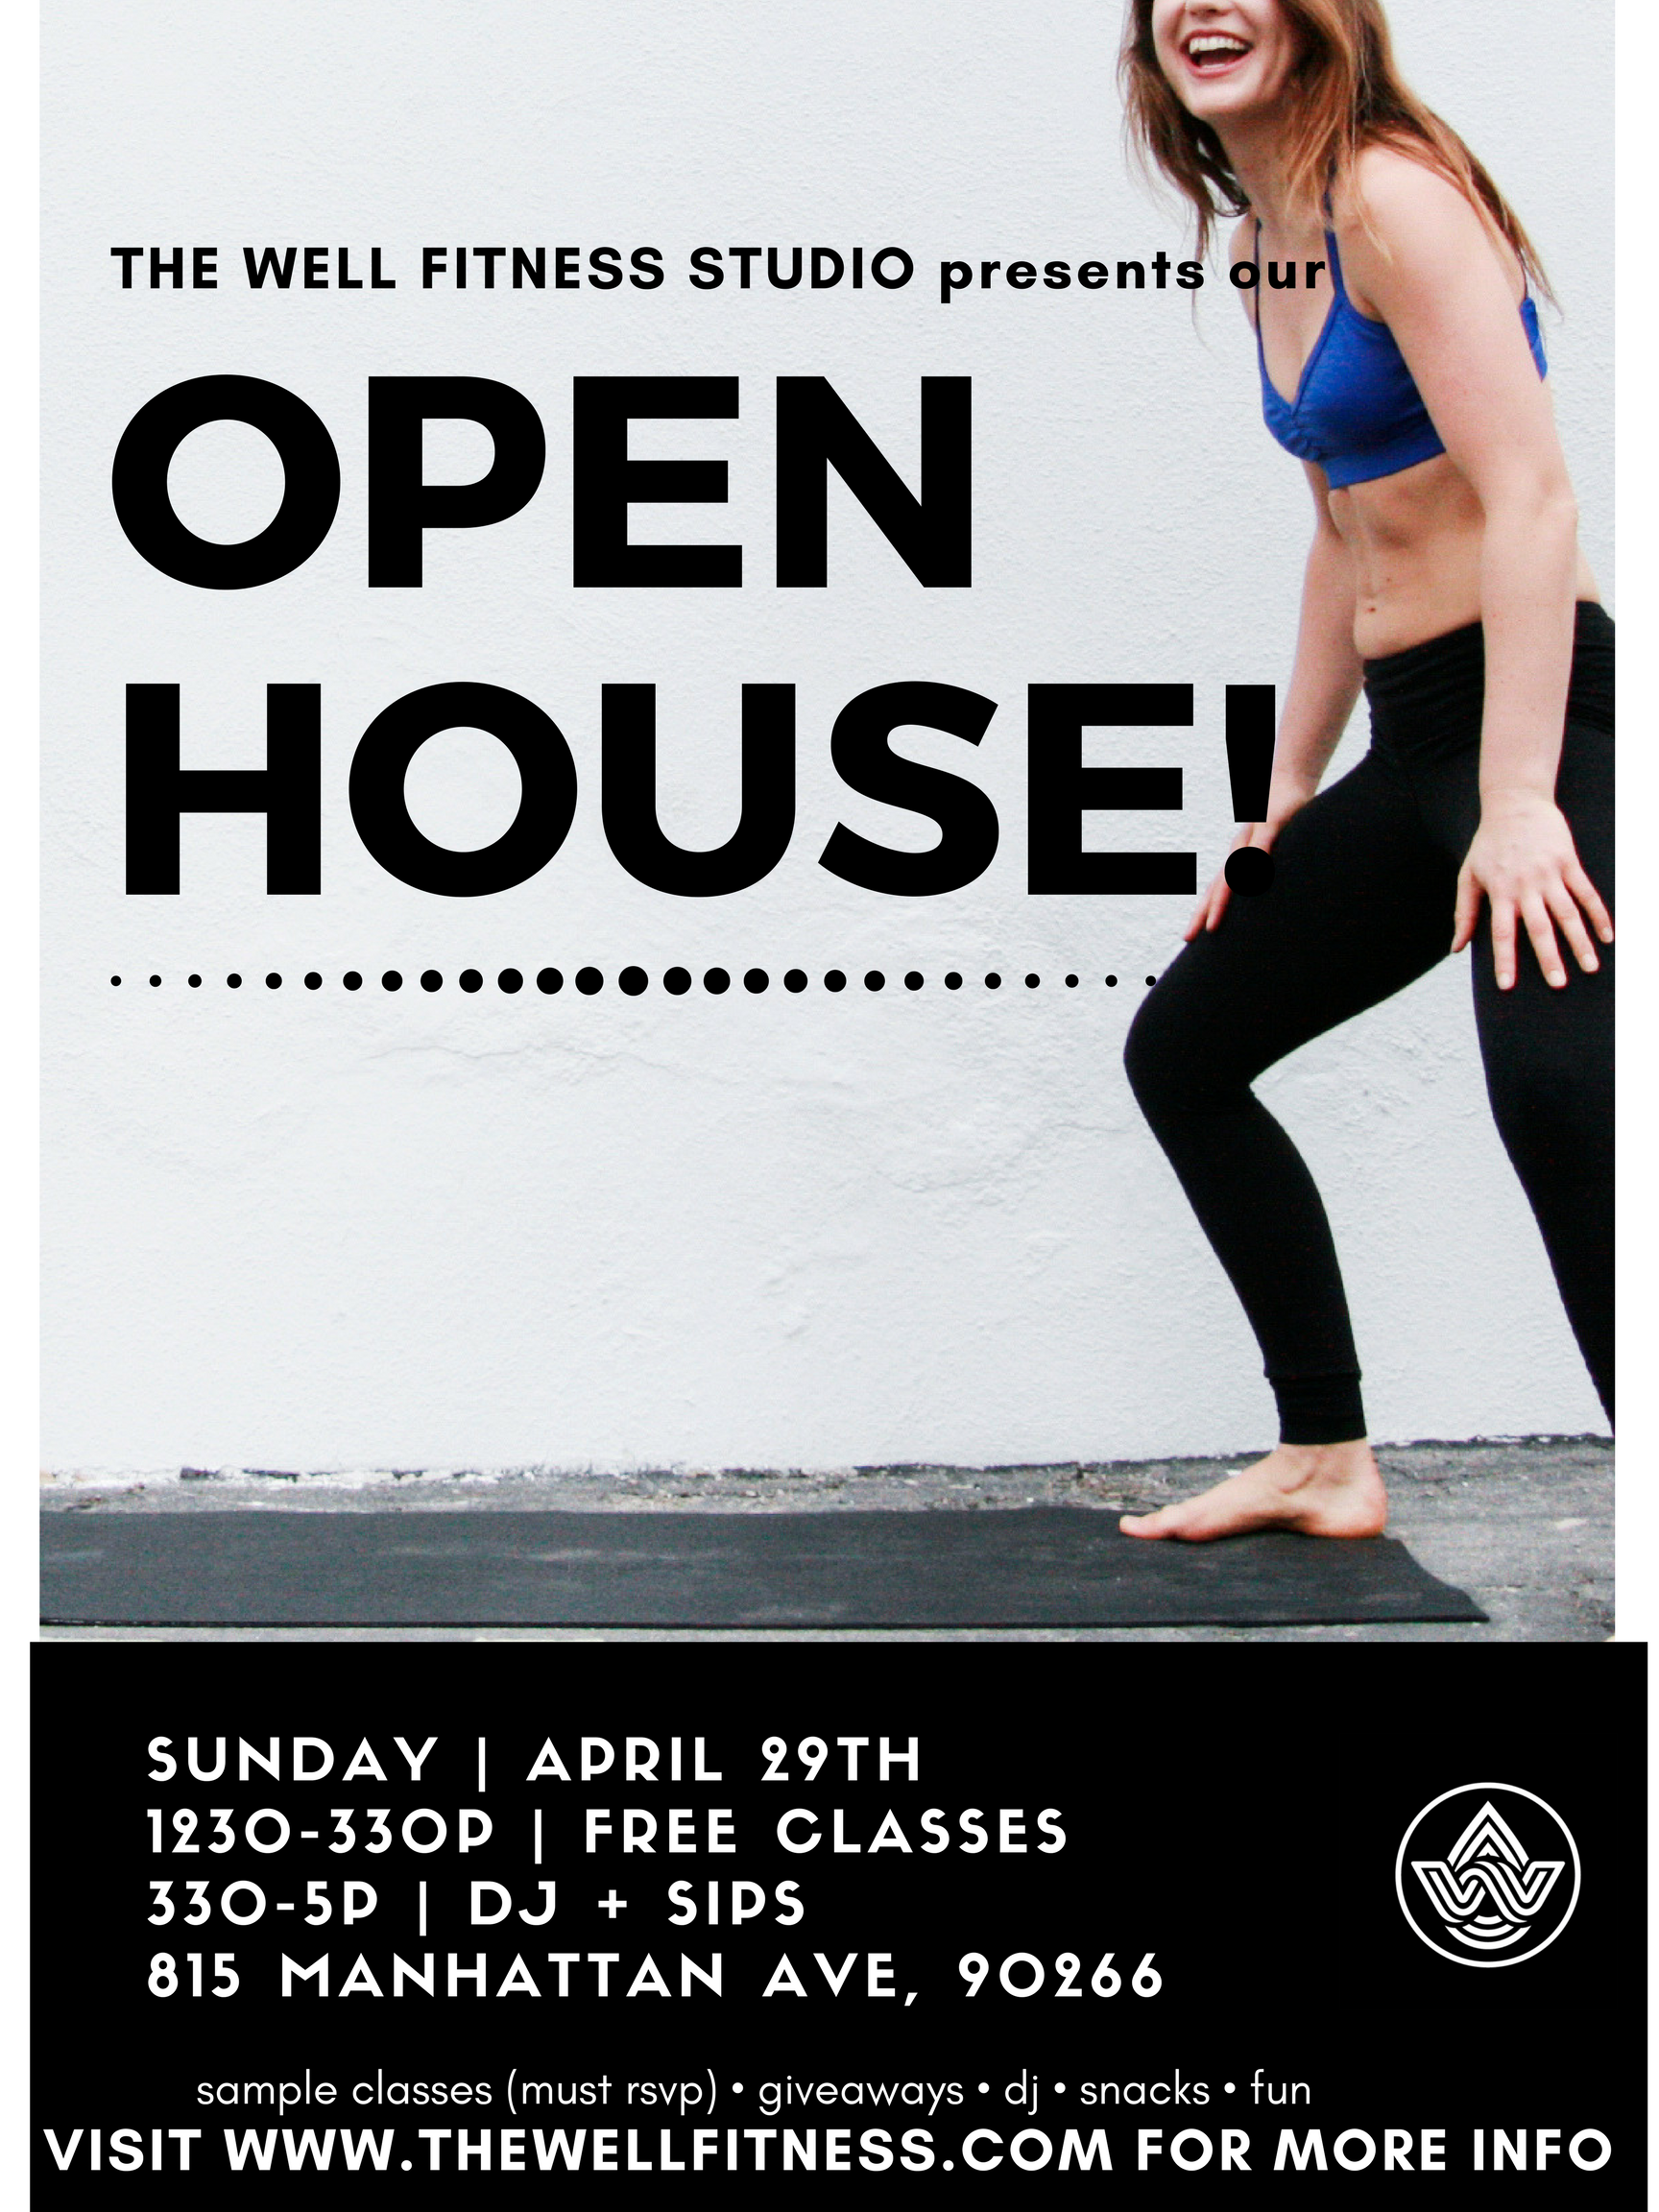 Join The Well Fitness Studio on Sunday, April 29th for our Open House! - Sample classes like Vinyasa, Sculpt, Sound Healing and Nidra from 12:30-3:30pm for free (must rsvp) at www.thewellfitness.com.Just get to know us and have some fun from 3:30-5pm with a DJ, sips, a fantastic trunk show from Lorna Jane and enter our raffle for a chance to win SIX MONTHS of membership and more!!Visit www.thewellfitness.com for more info!